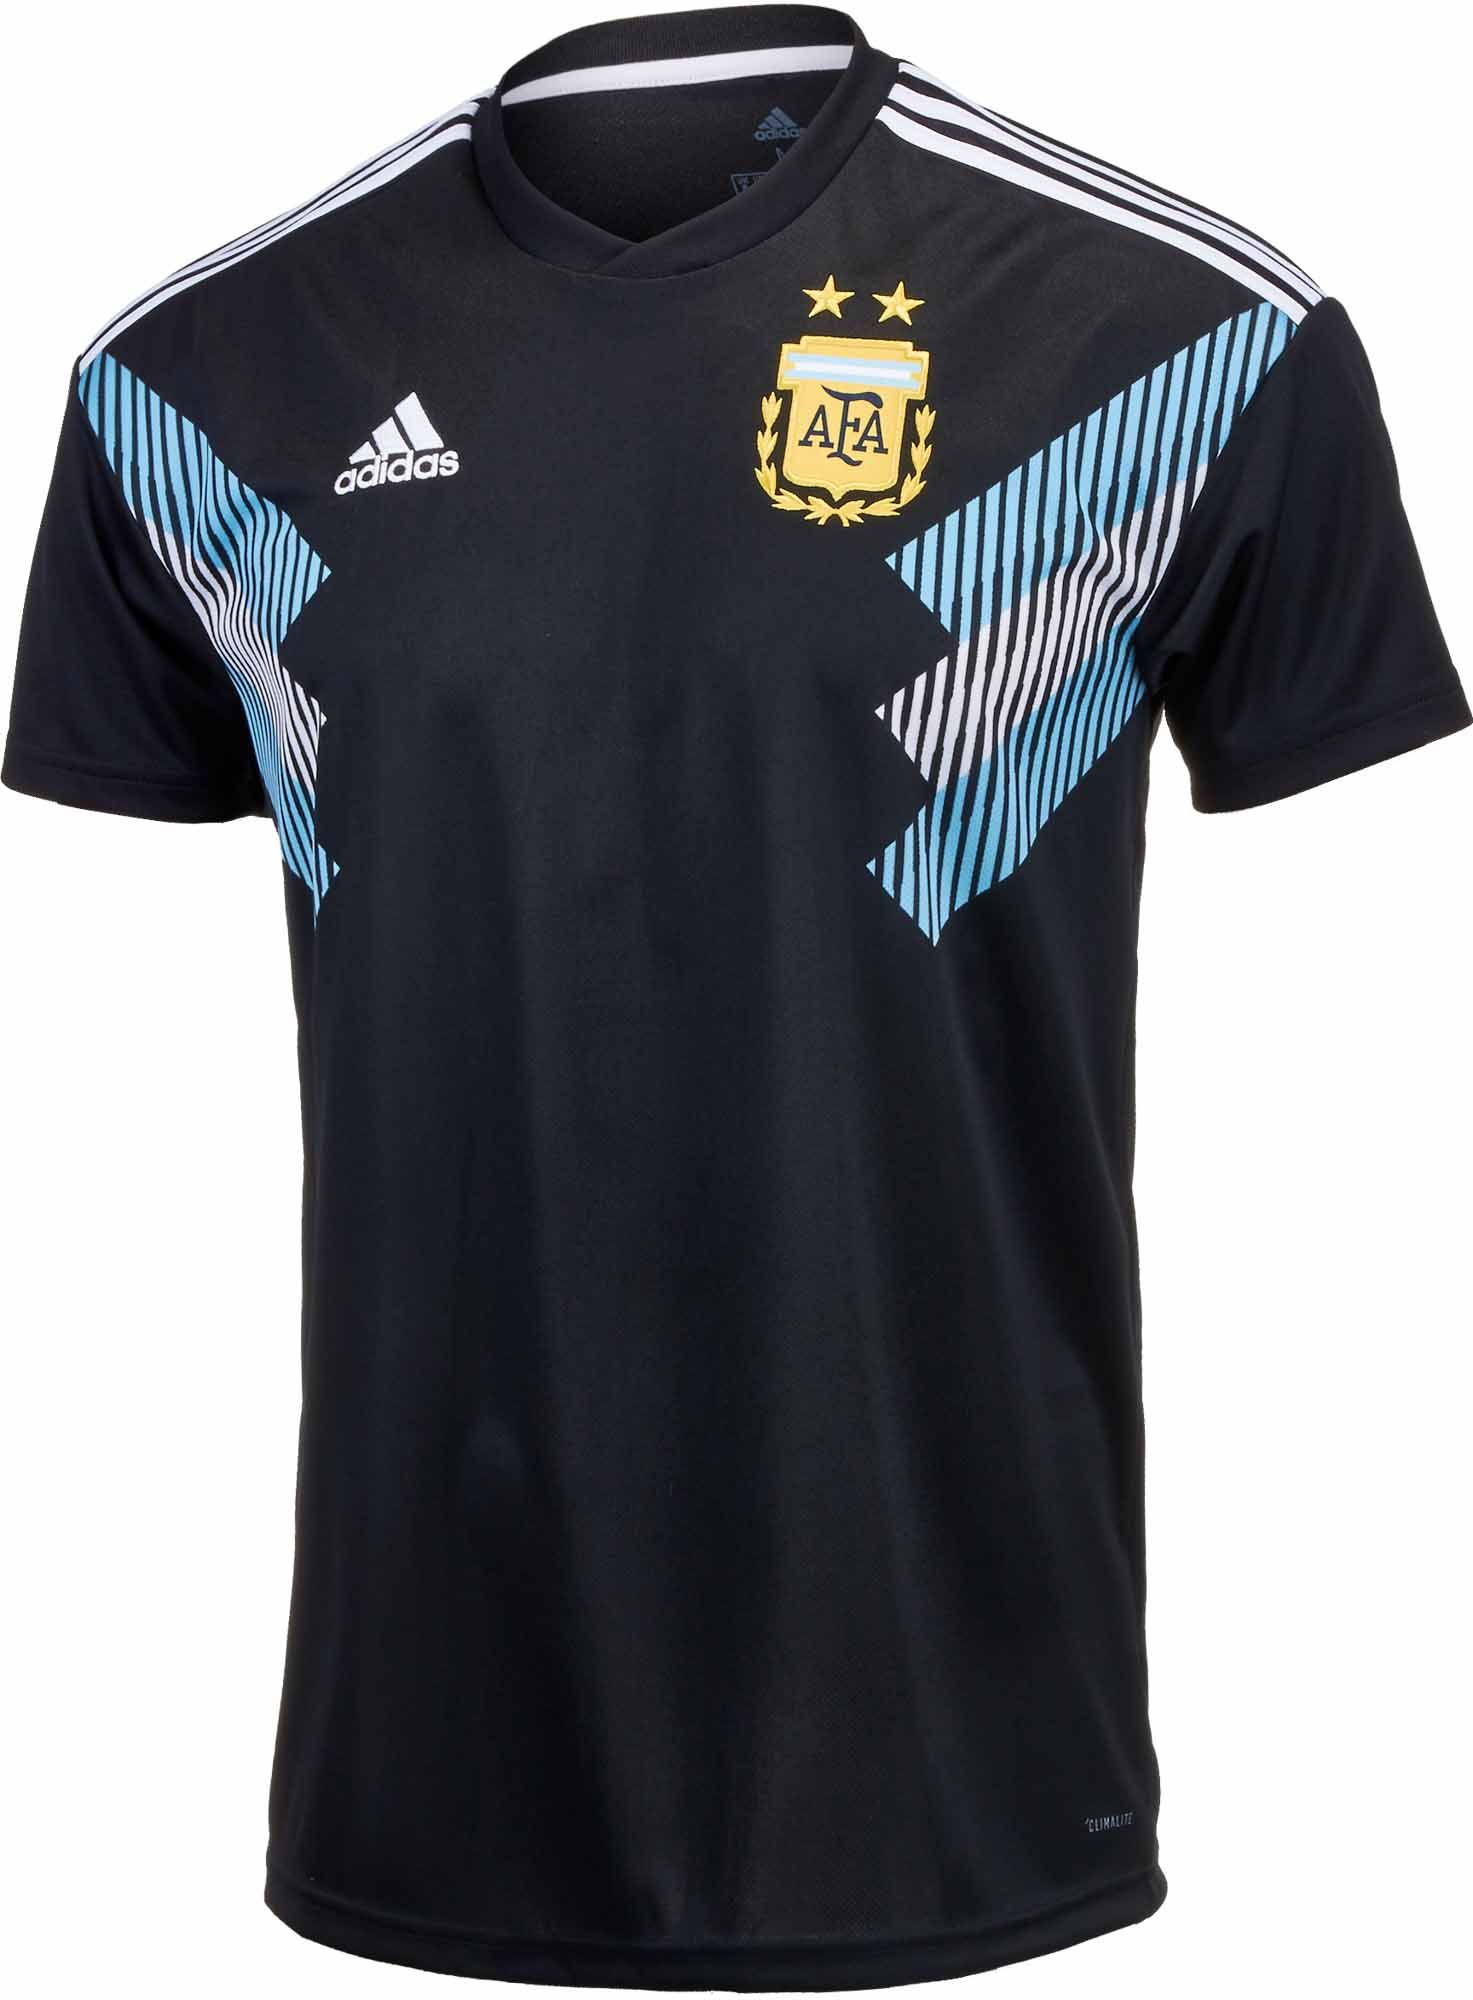 2018 adidas Argentina Away Jersey. Buy it from SoccerPro fdaea1f97